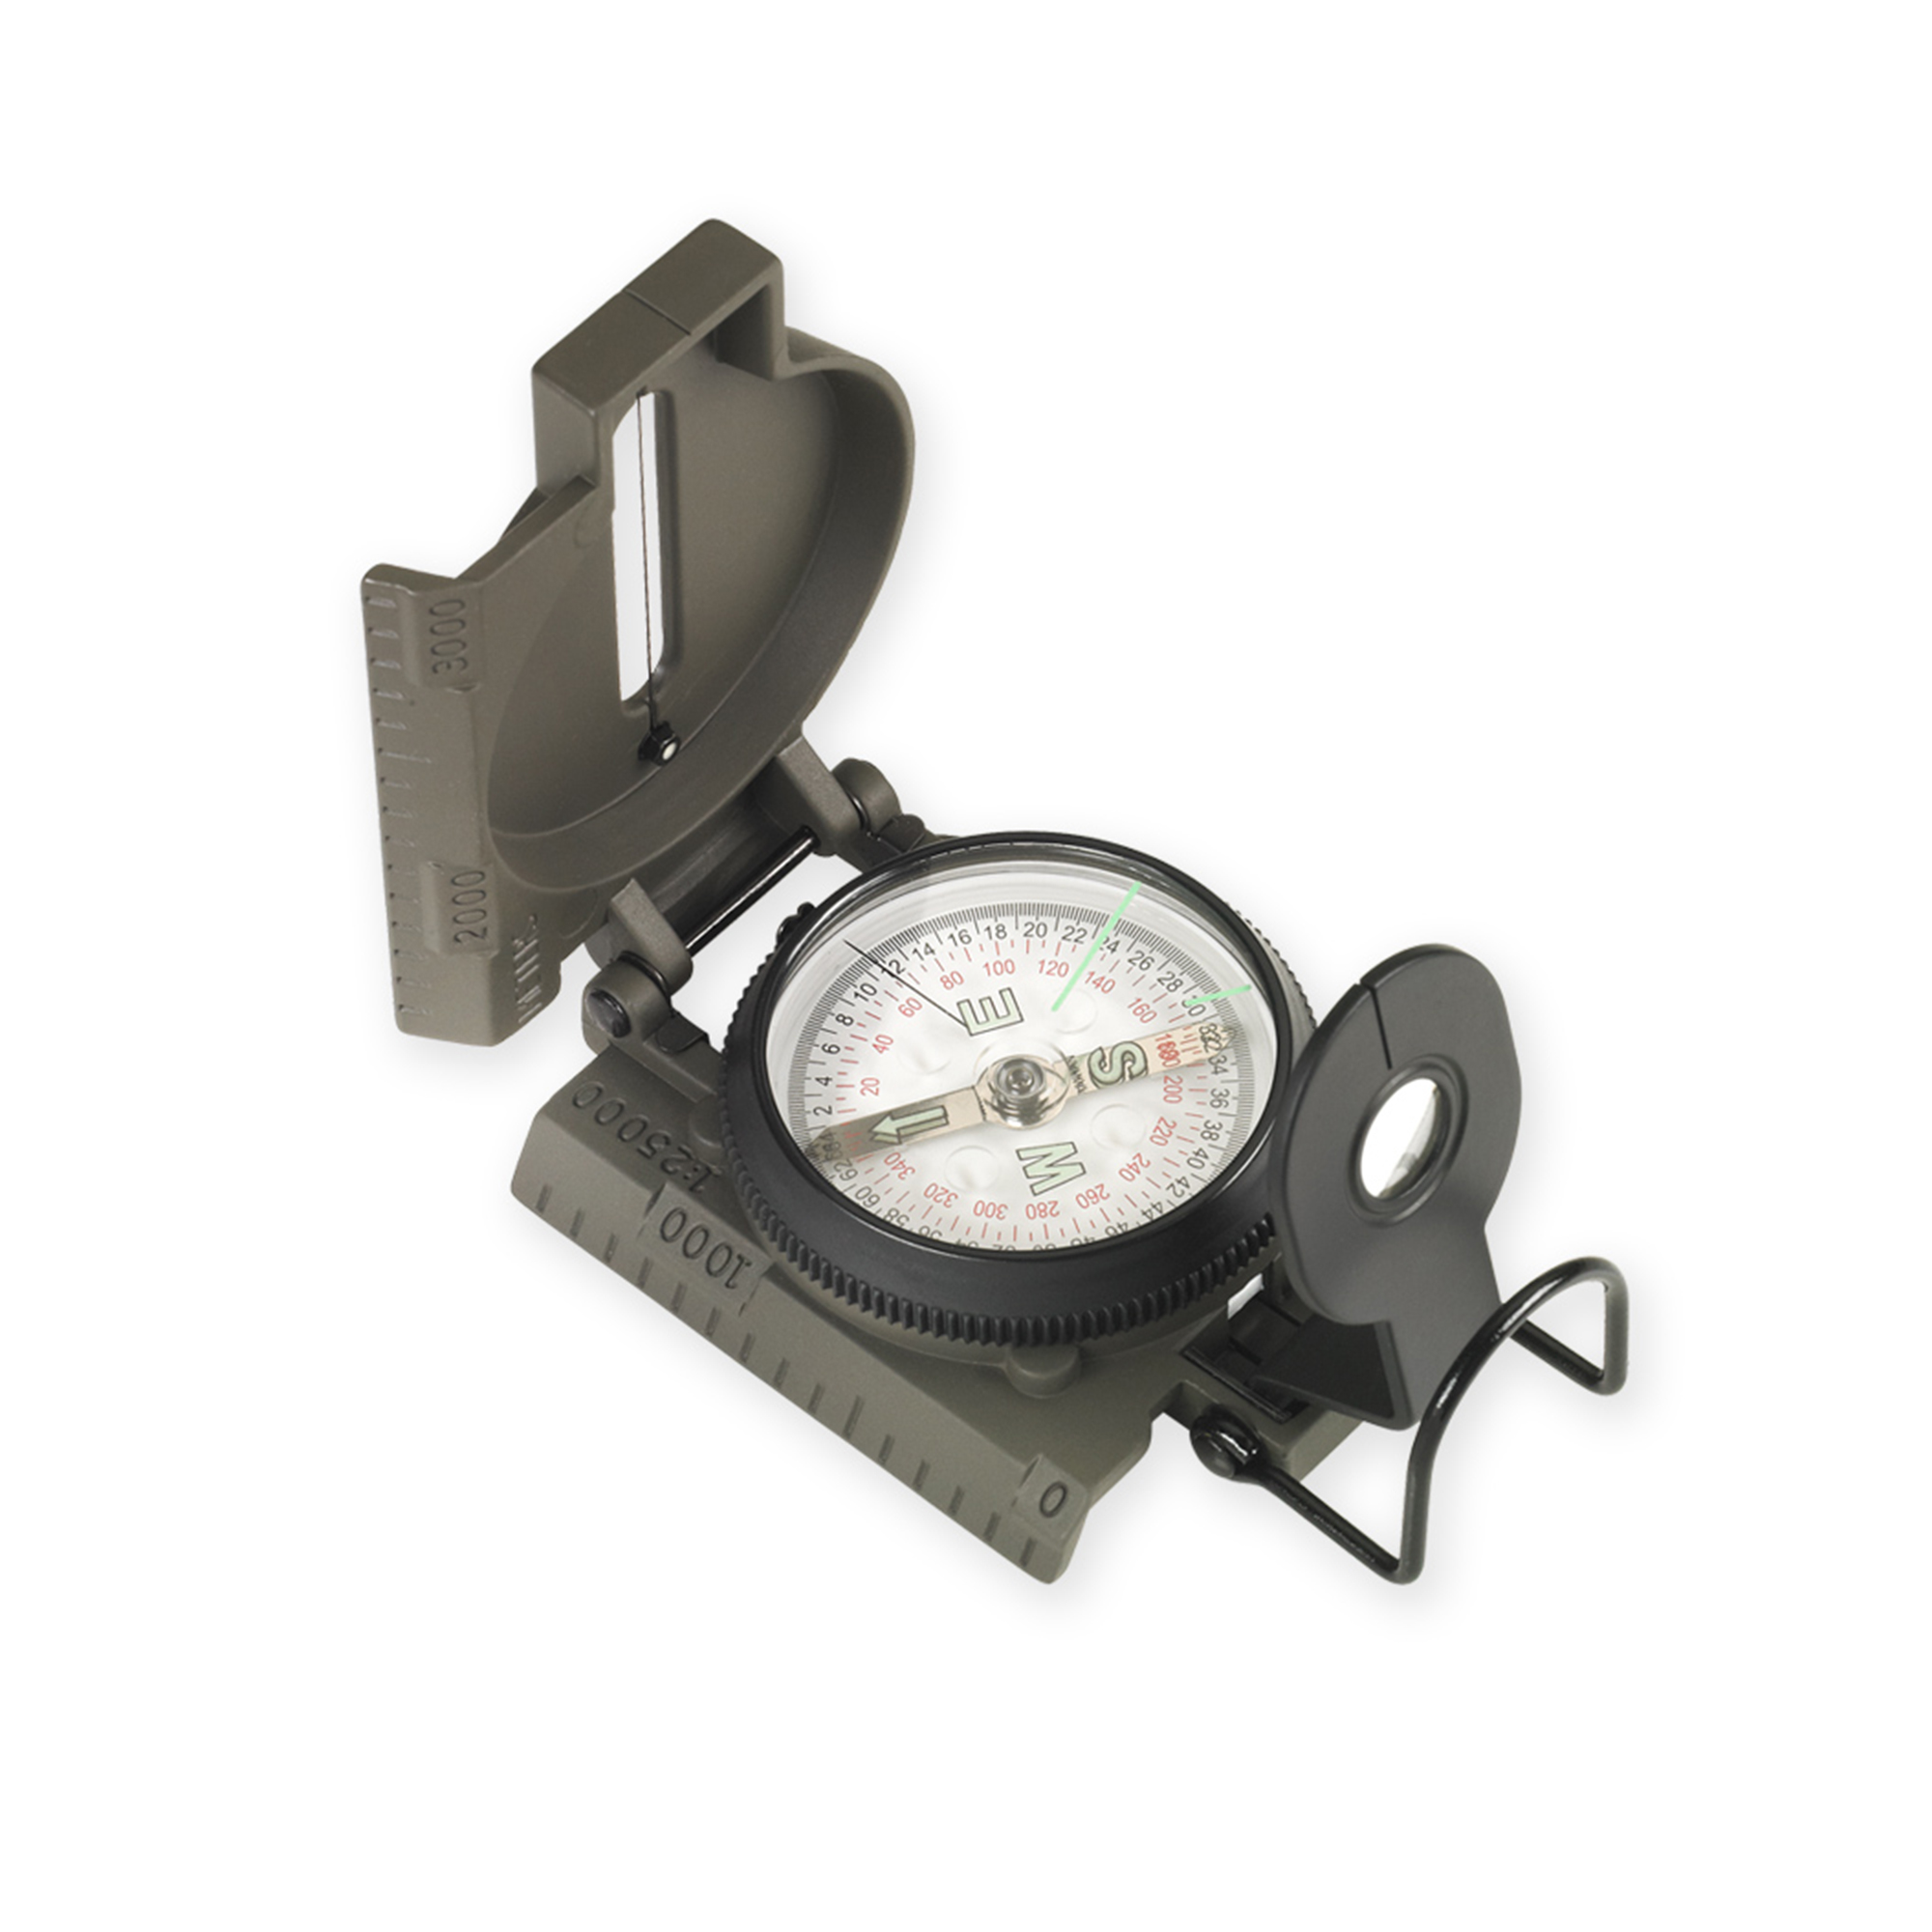 Proforce Equipment Compass NDūR Engineer Directional with Metal Case